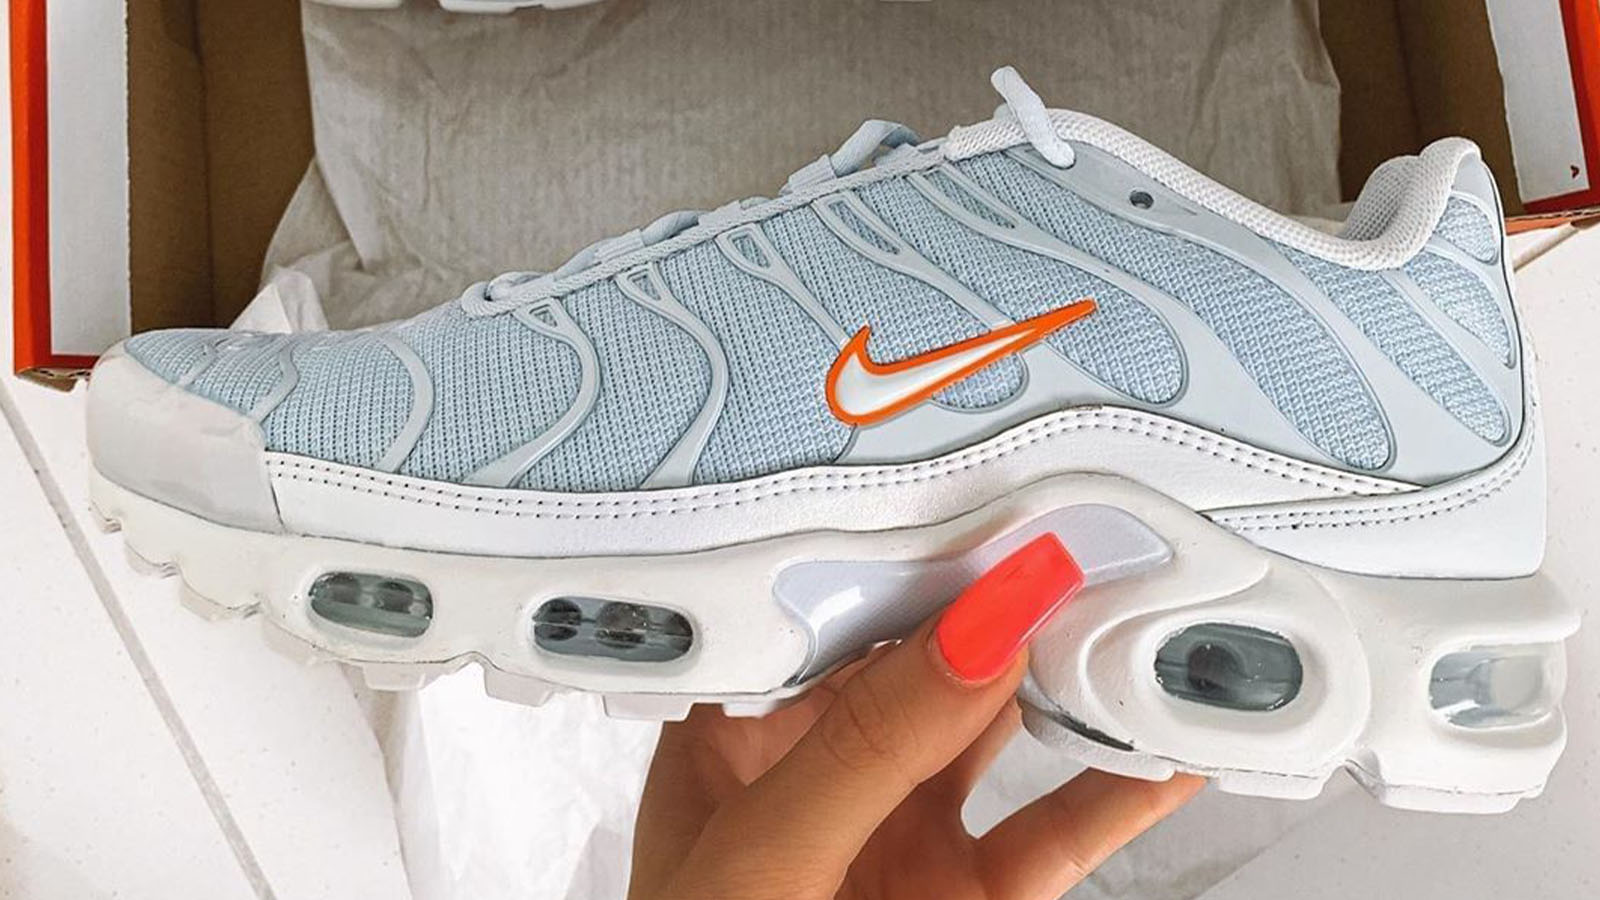 sustracción fertilizante Te mejorarás  Get 25% Off These Bestselling Nike Air Max Plus From Foot Locker UK | Style  Guides | The Sole Womens